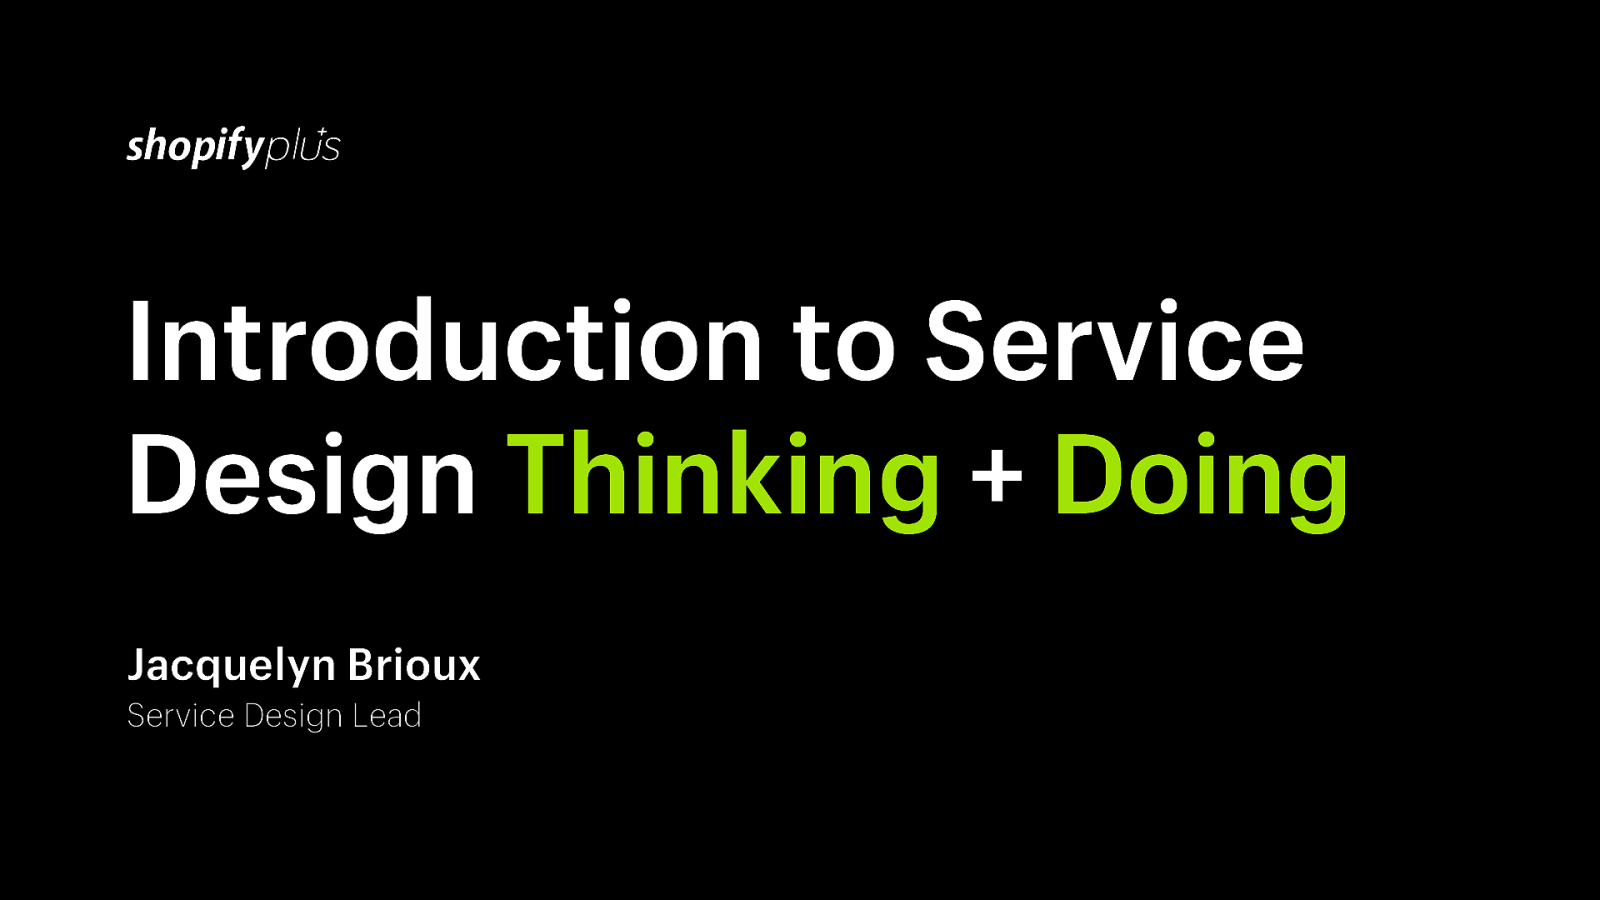 Introduction to Service Design Thinking & Doing